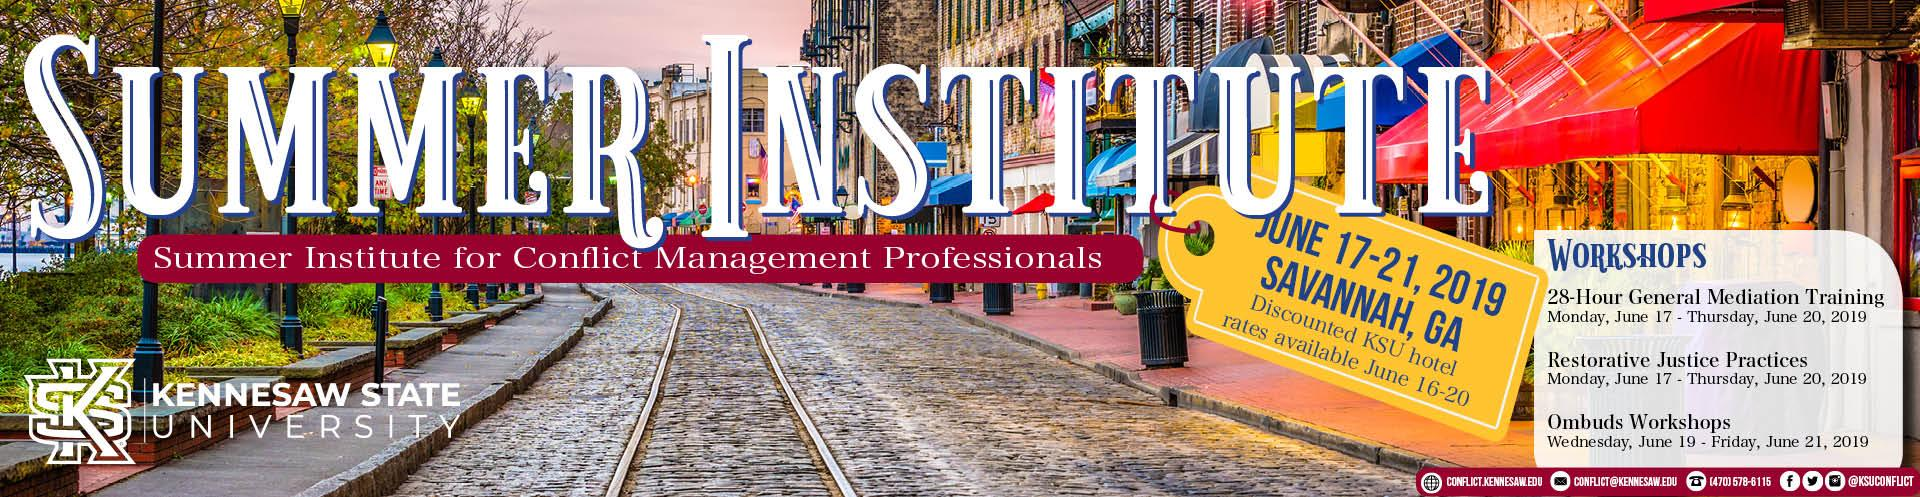 Summer Institute for Conflict Management Professionals